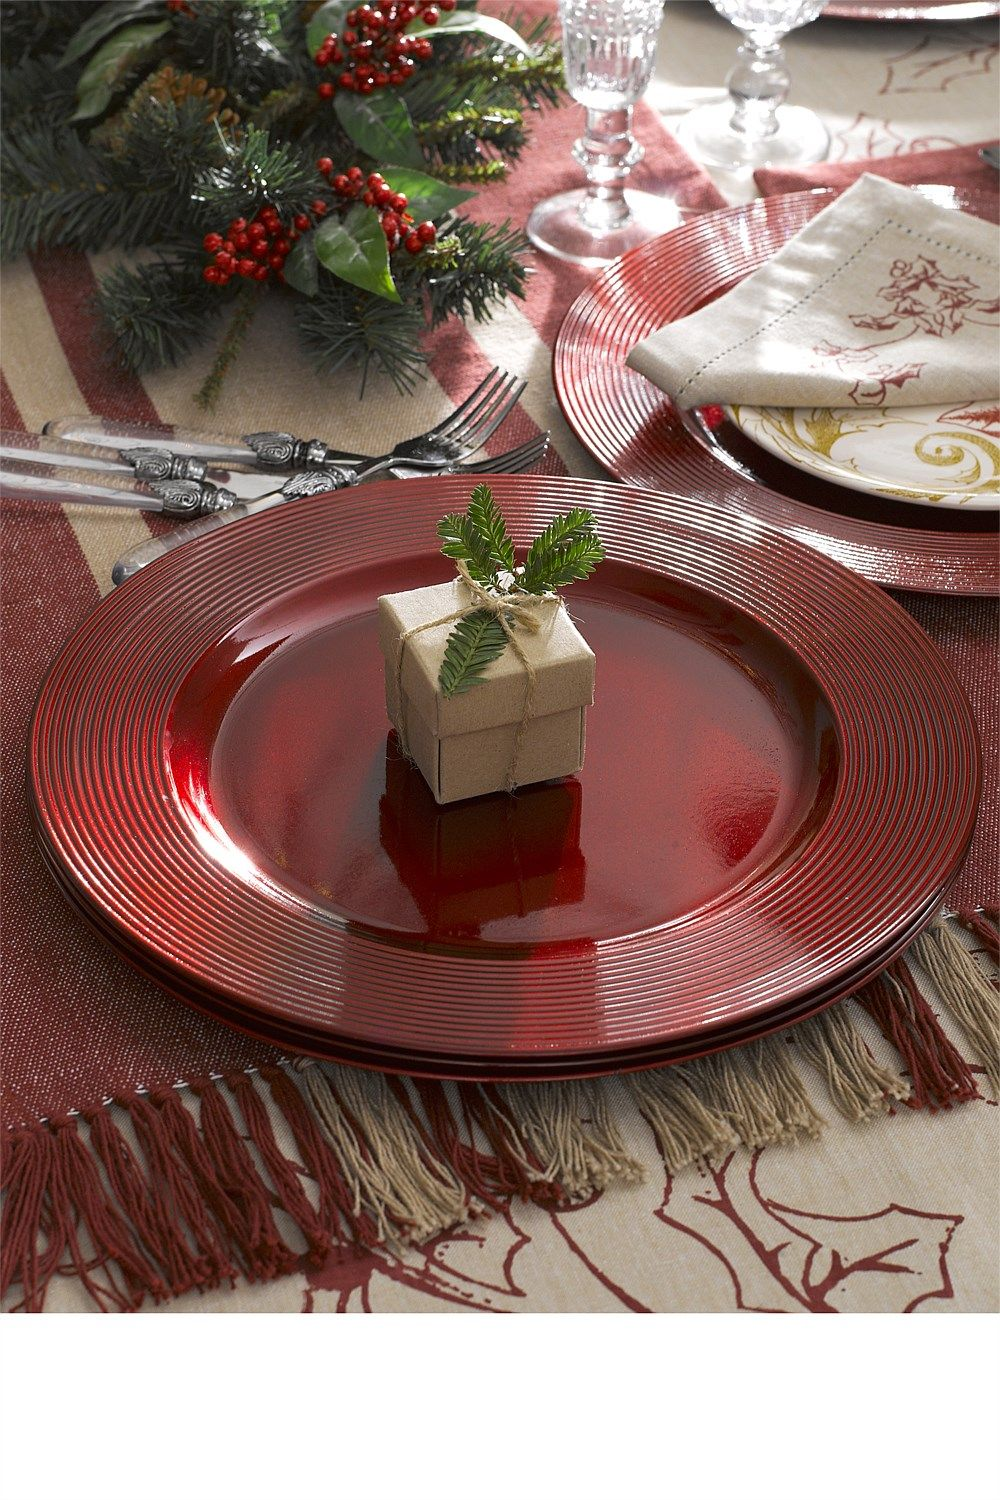 Trees, Wreaths & Decorations Glitter Charger Plates Set